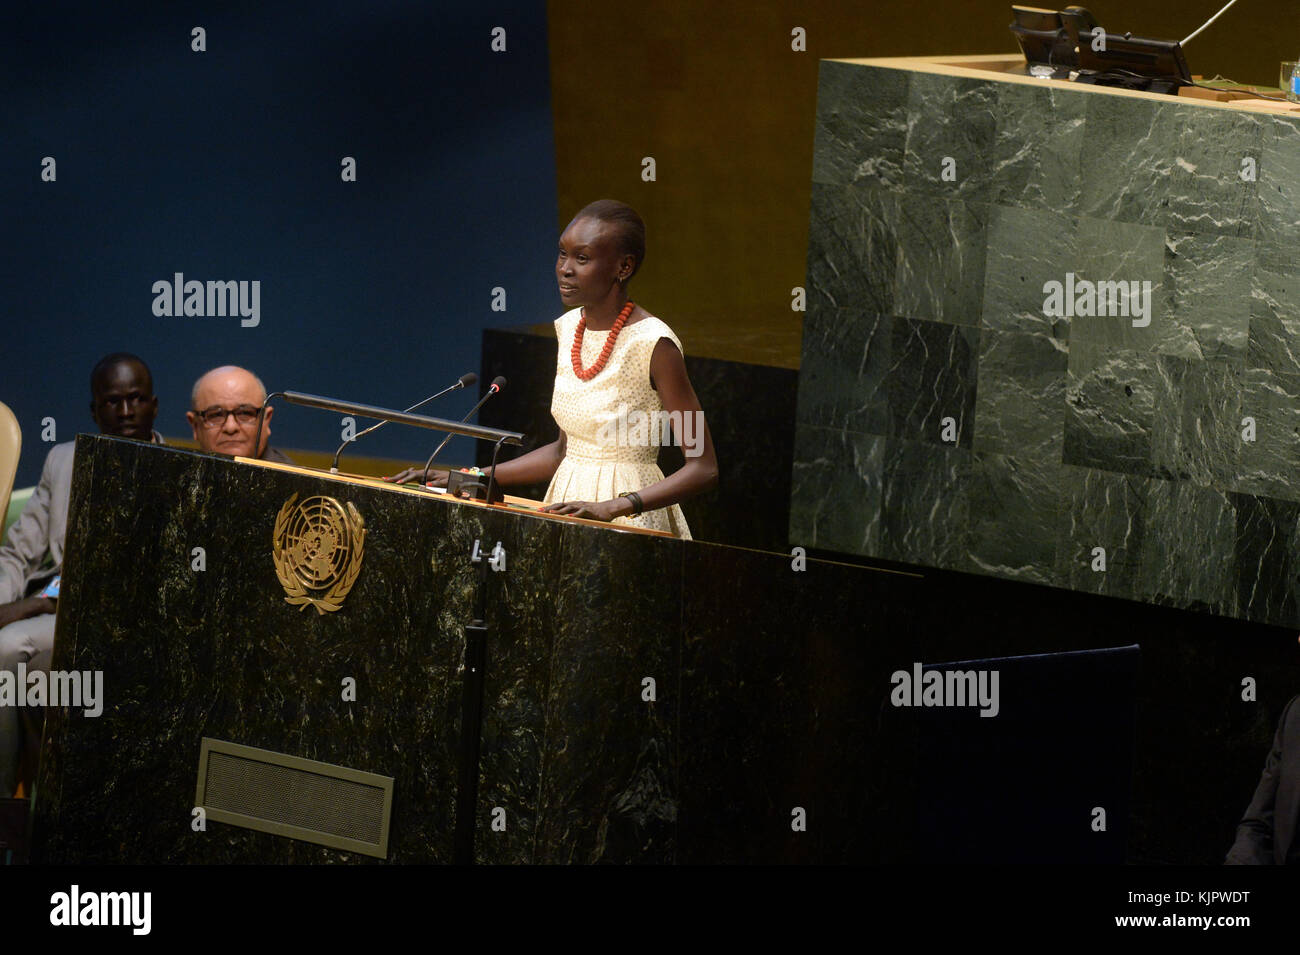 NEW YORK, NY - SEPTEMBER 16: UNHCR supporter Alek Wek speaks during UNHCR #WithRefugees petition handover at UN - Stock Image